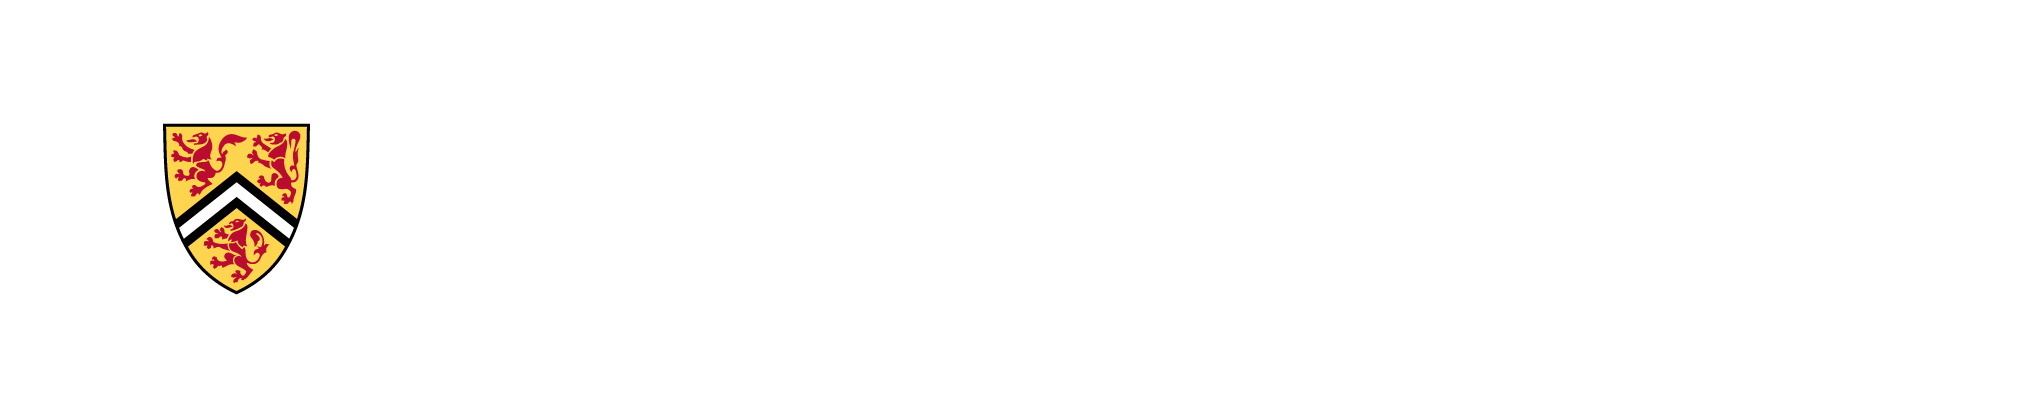 University of Waterloo Stratford School of Interaction Design and Business Logo.